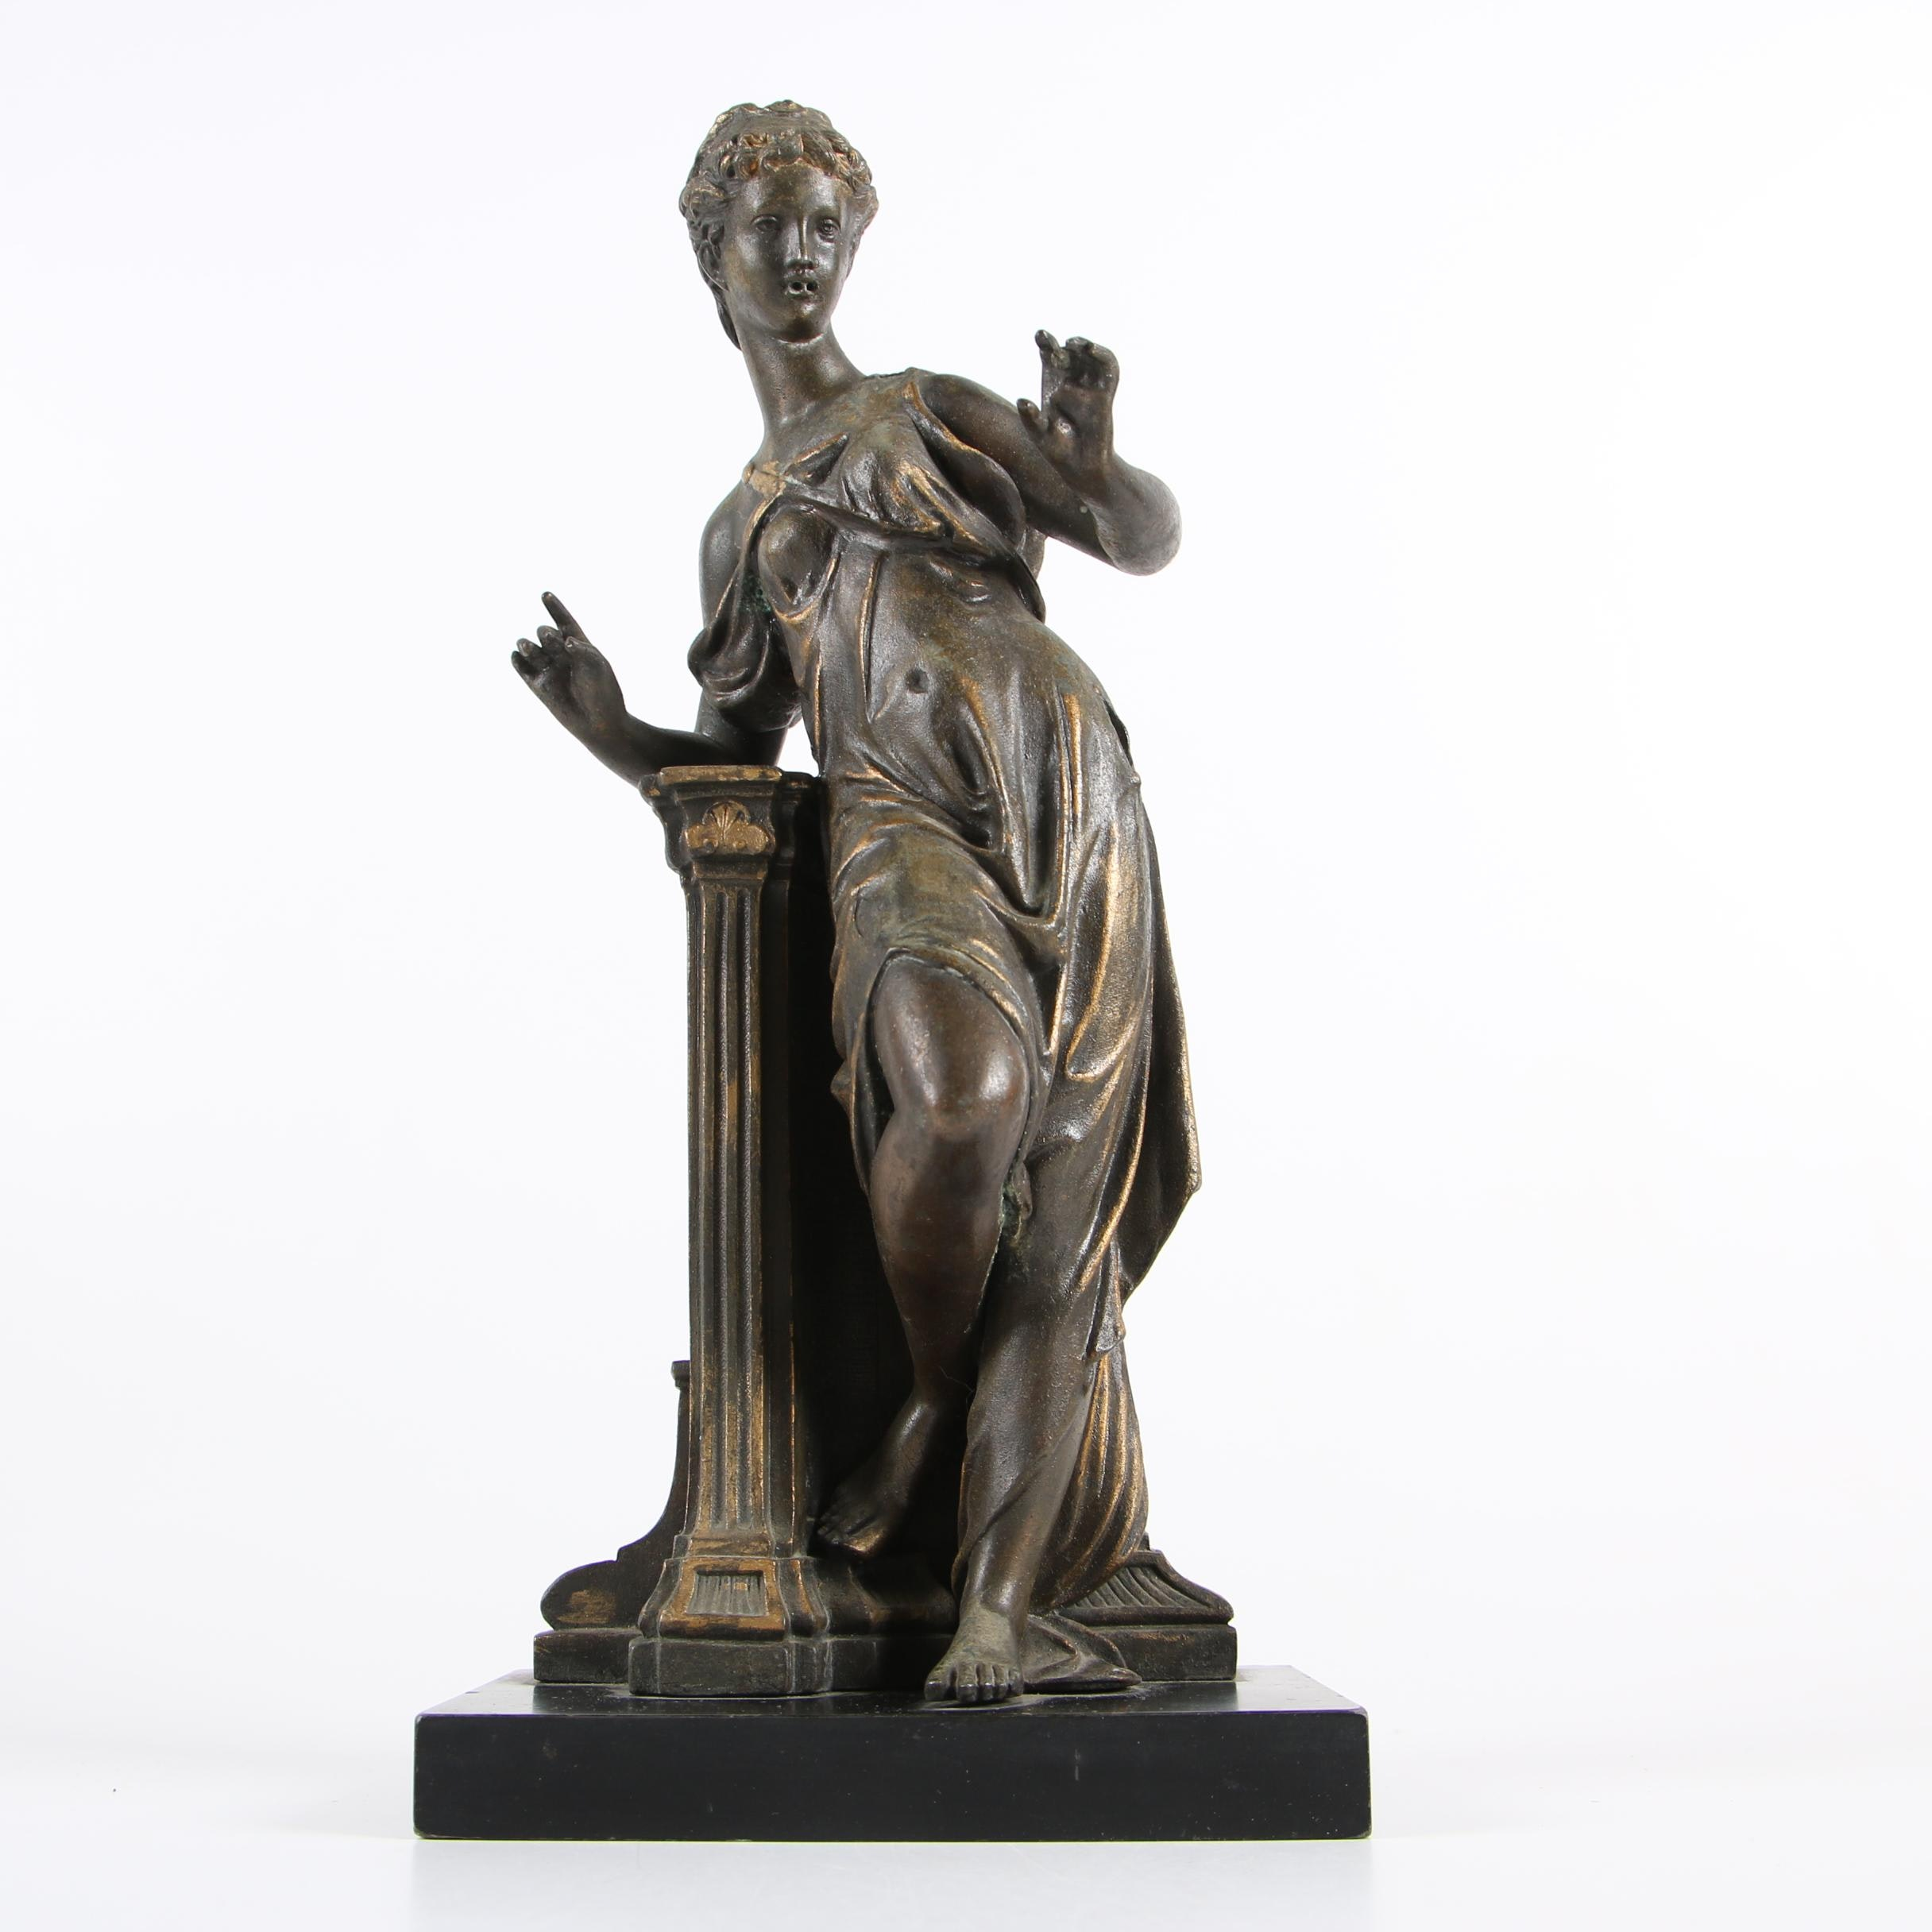 Metal Sculpture of a Neoclassical Figure